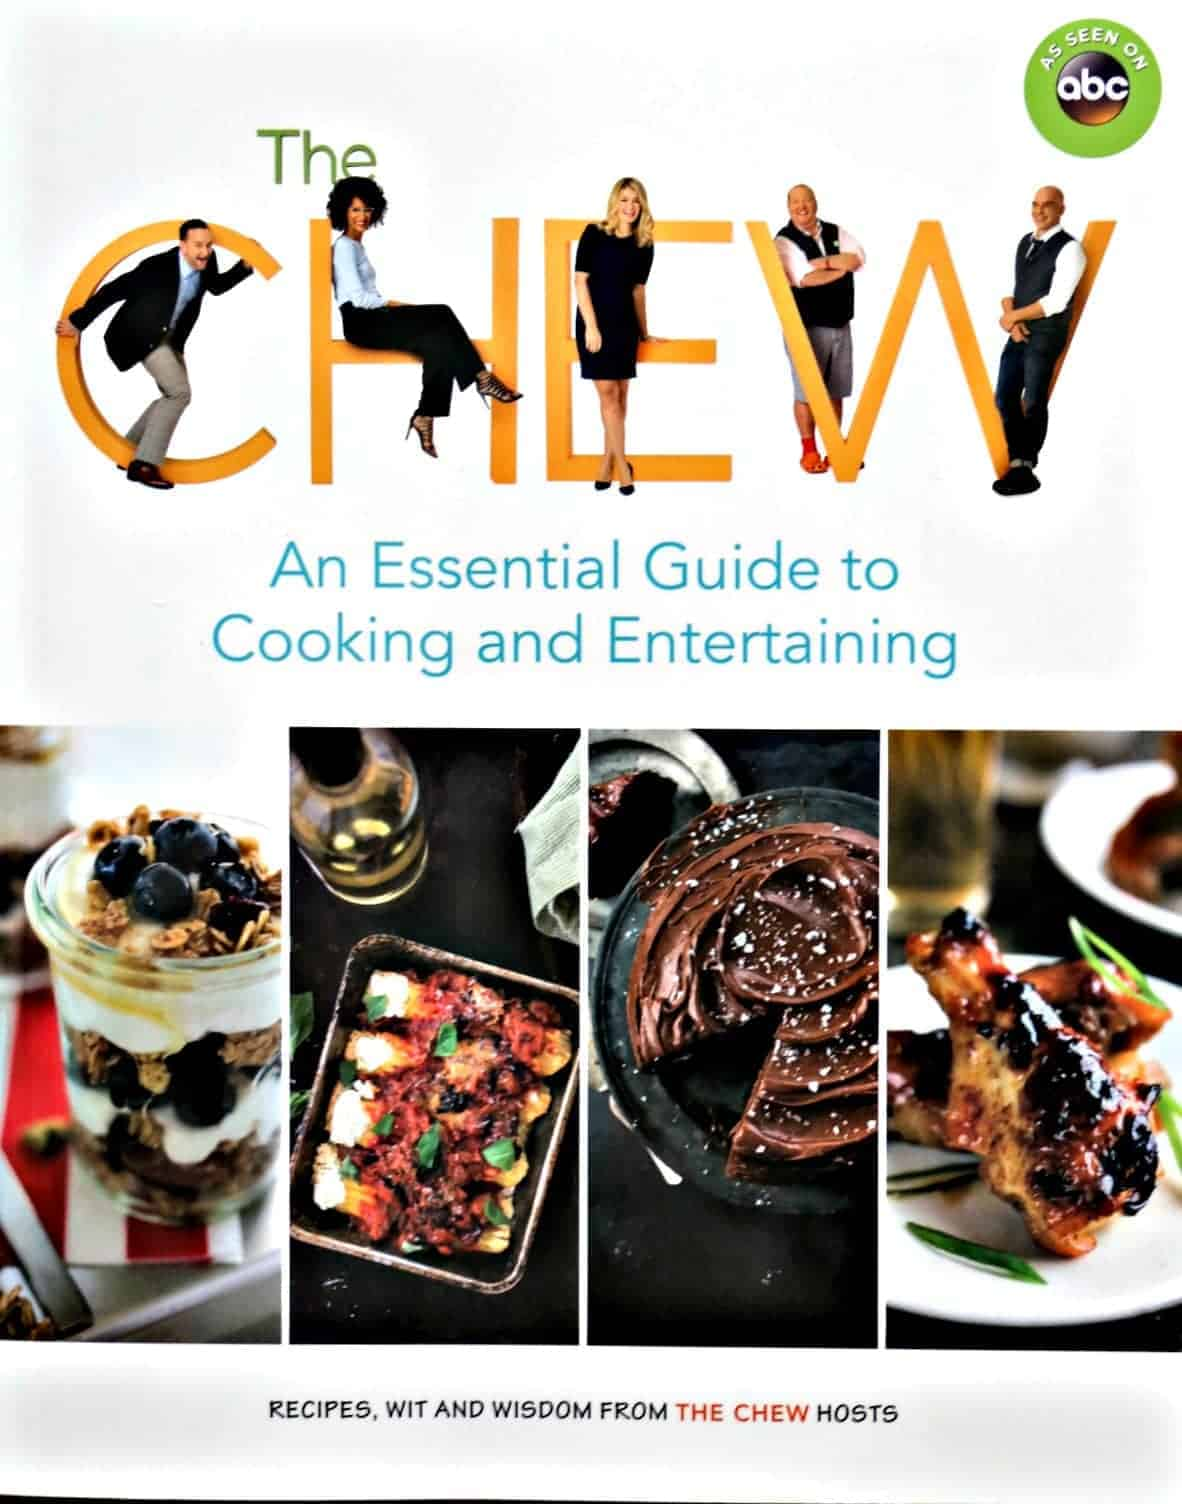 An Essential Guide to Cooking and Entertaining by The Chew cookbook